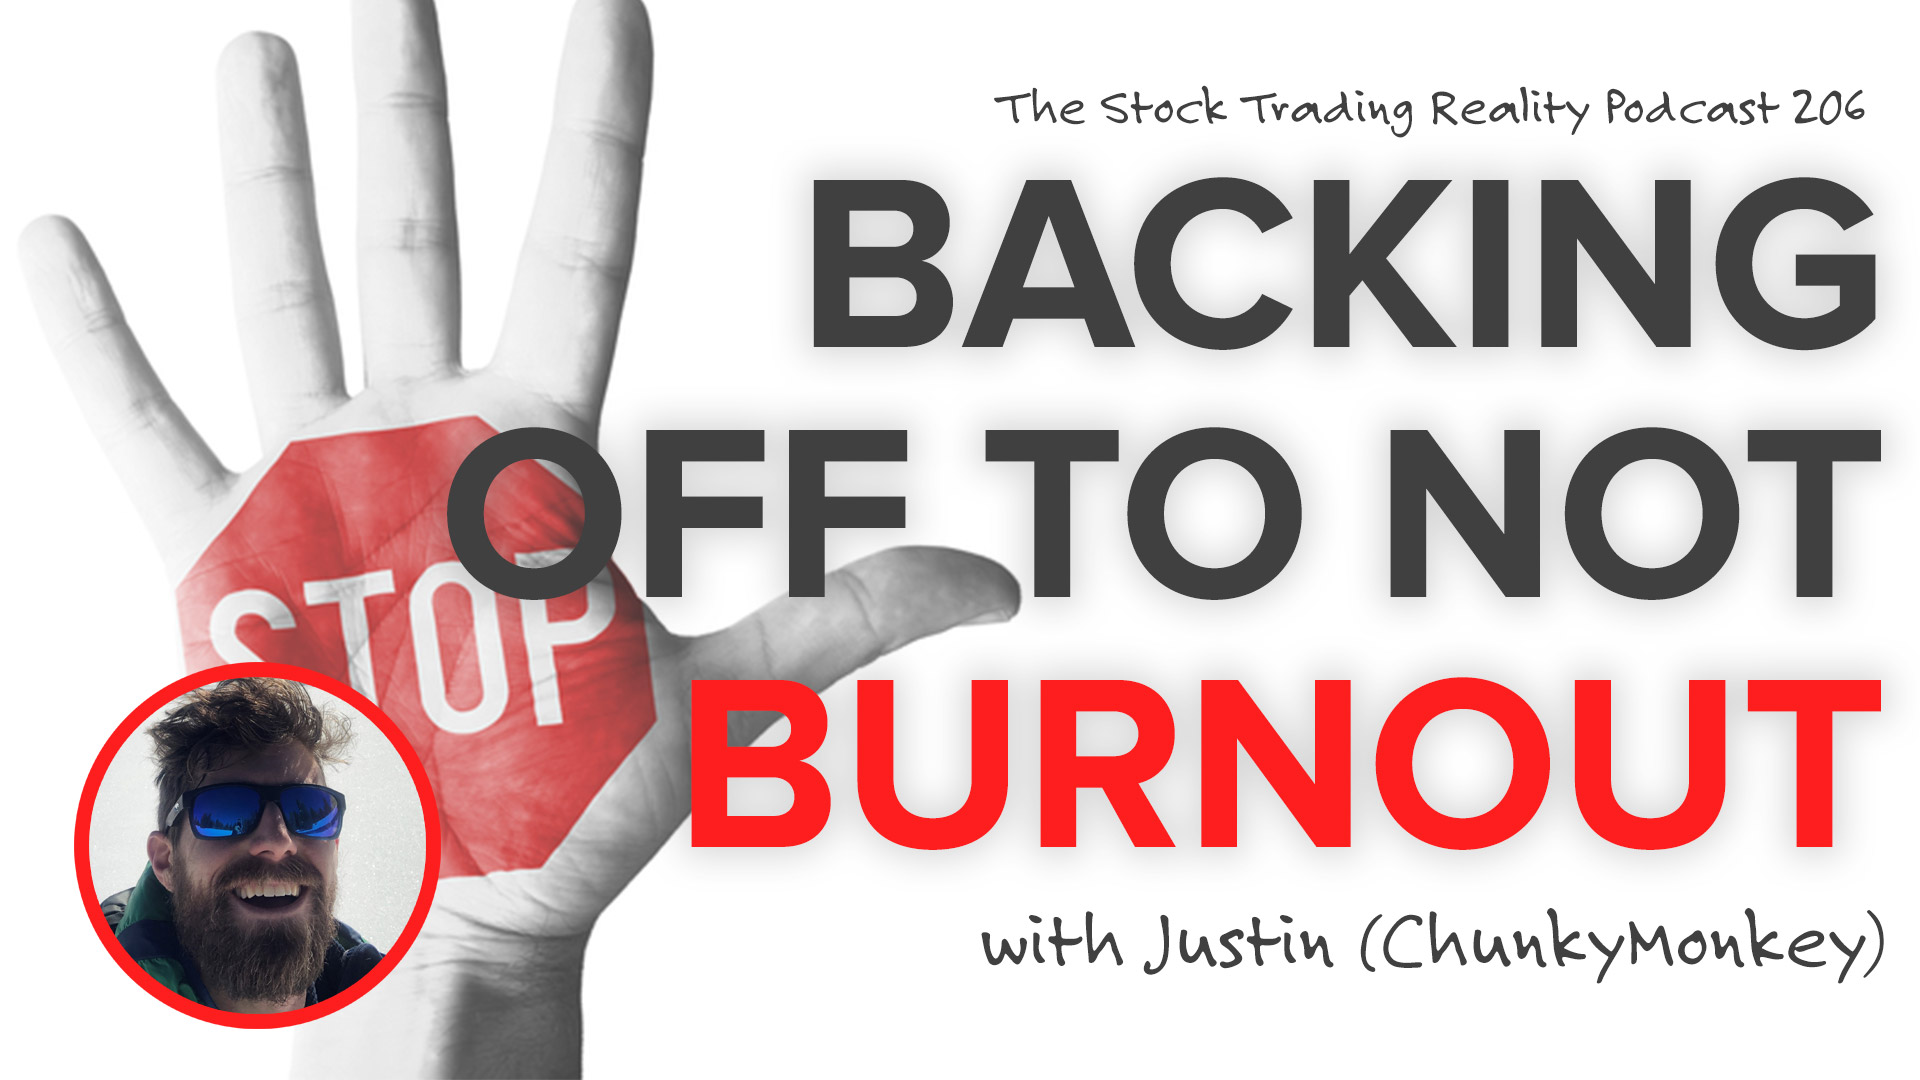 STR 206: Backing Off to Not Burnout